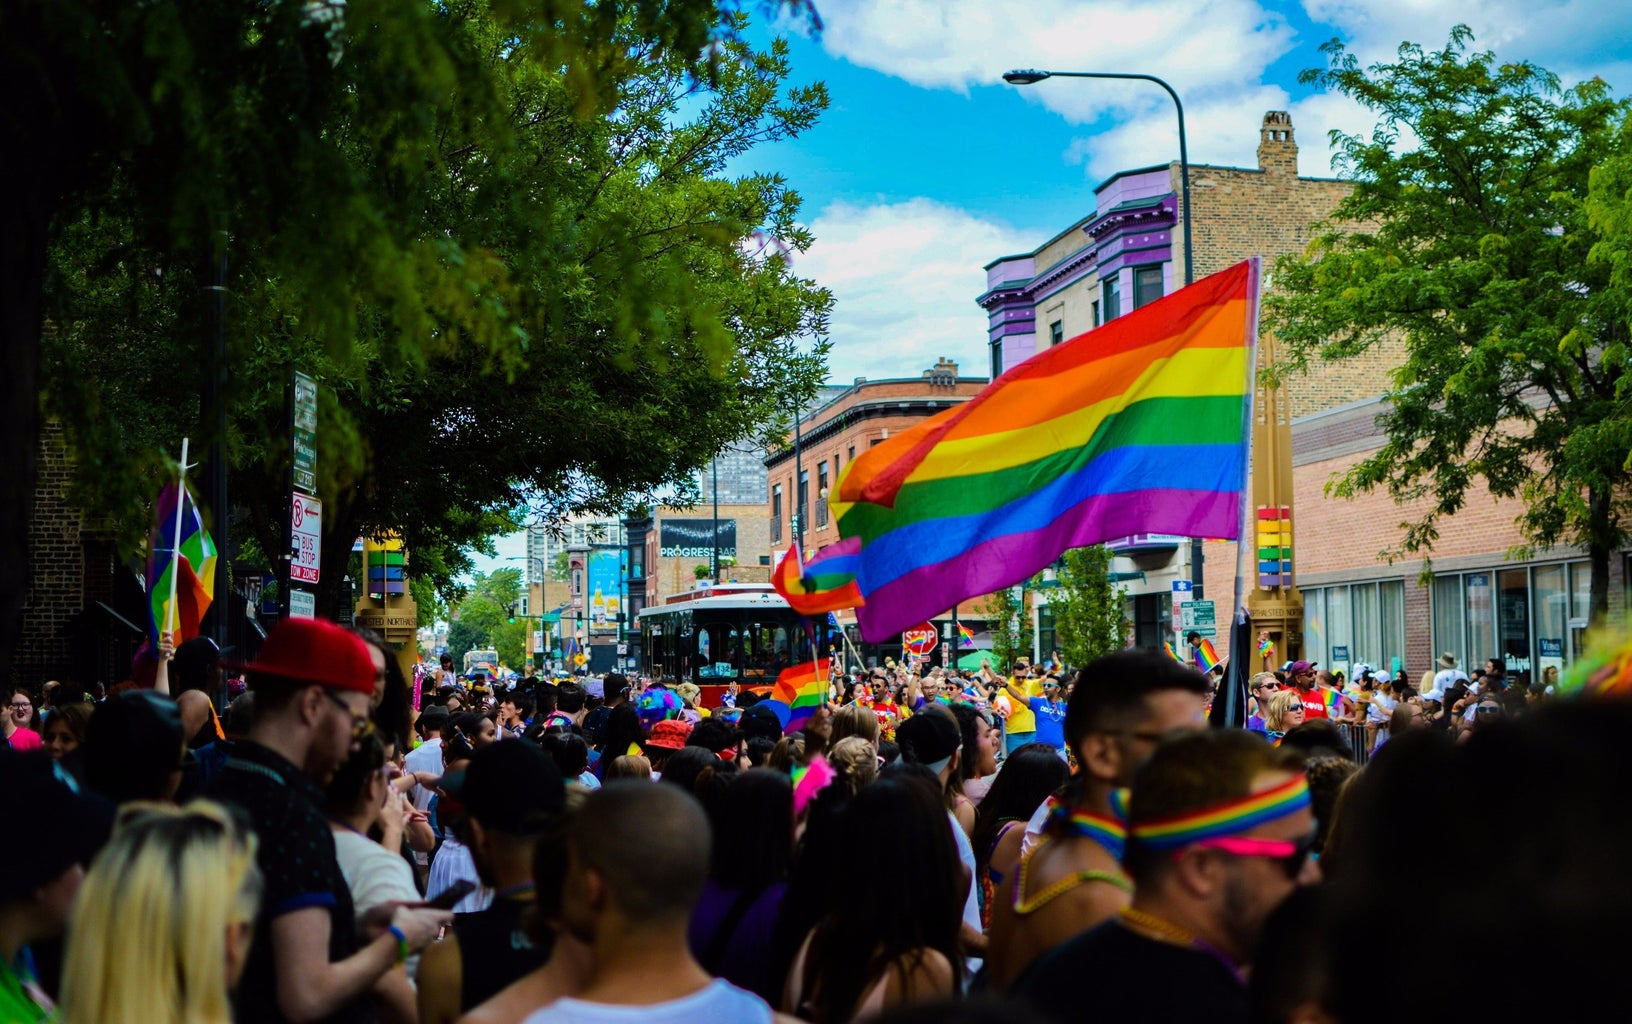 pride parade with rainbow flags